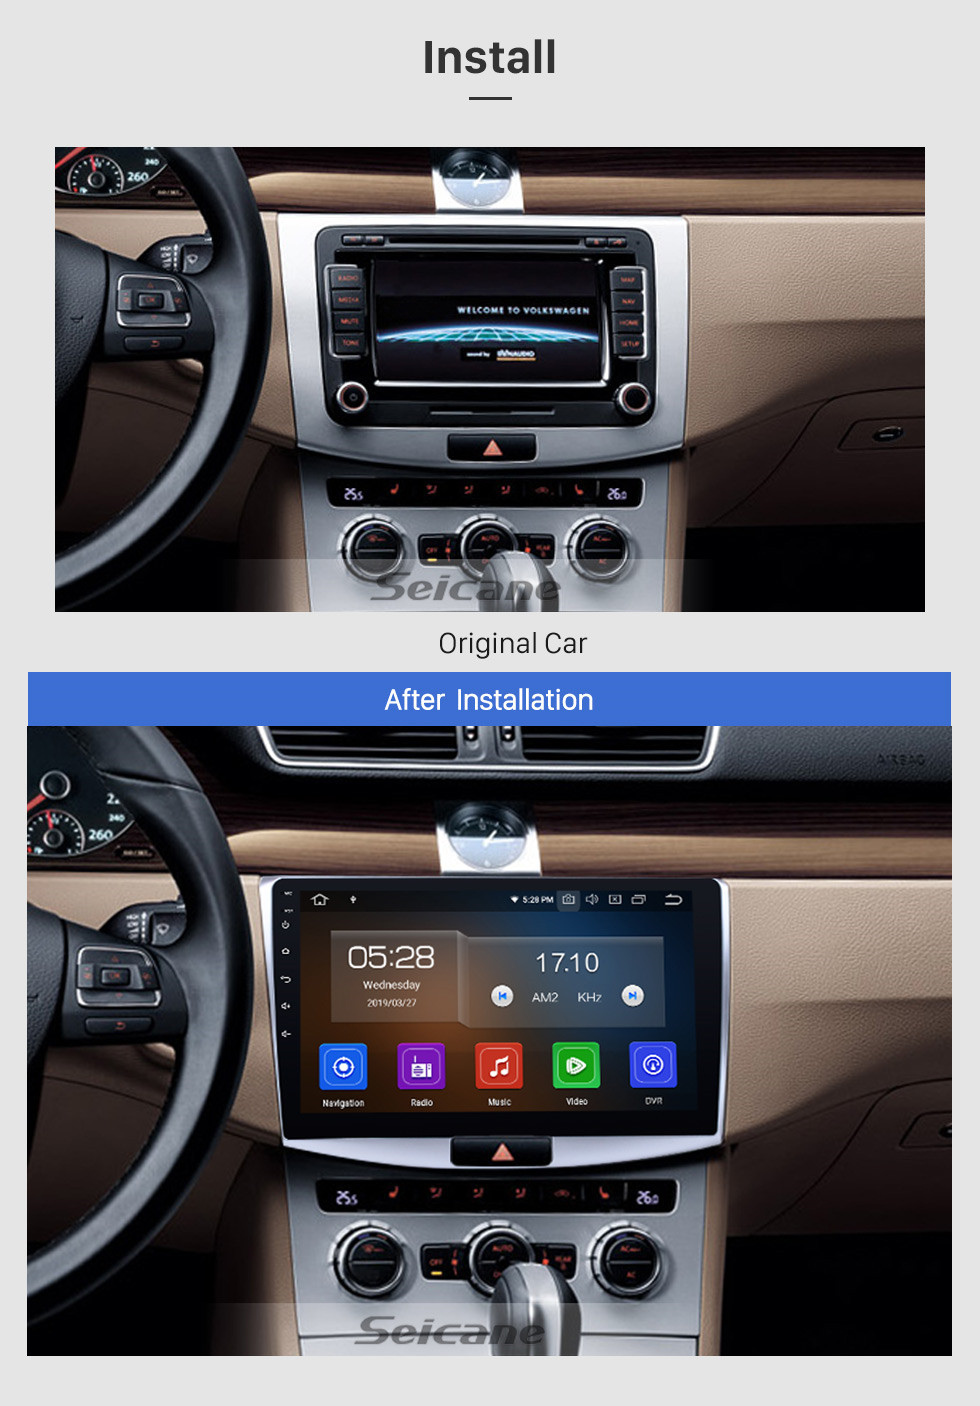 Seicane 10,1-дюймовый Android 10,0 для 2012 2013 2014 VW Volkswagen Magotan Radio Upgrade 1024 * 600 Мультисенсорный экран GPS-навигация Стерео CD-плеер SWC WiFi OBD2 Зеркальная связь Bluetooth Музыка